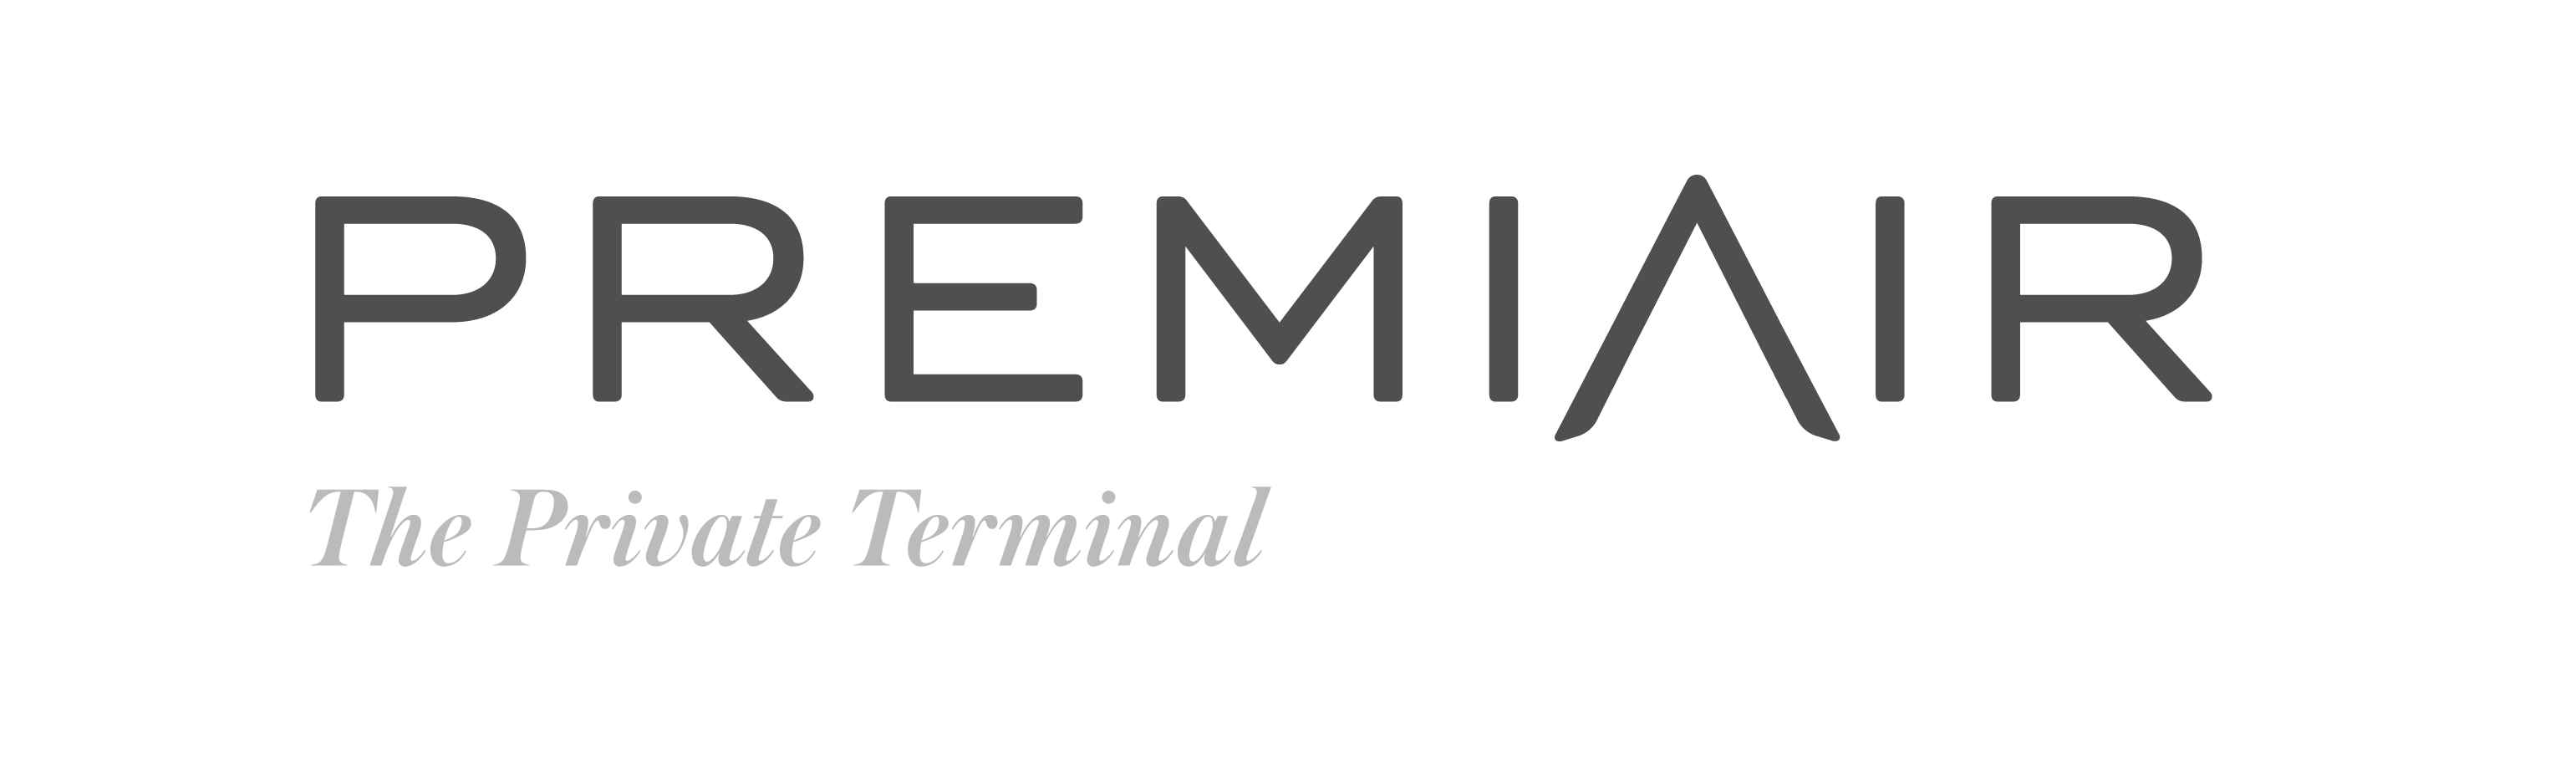 PremiAir - The Private Terminal